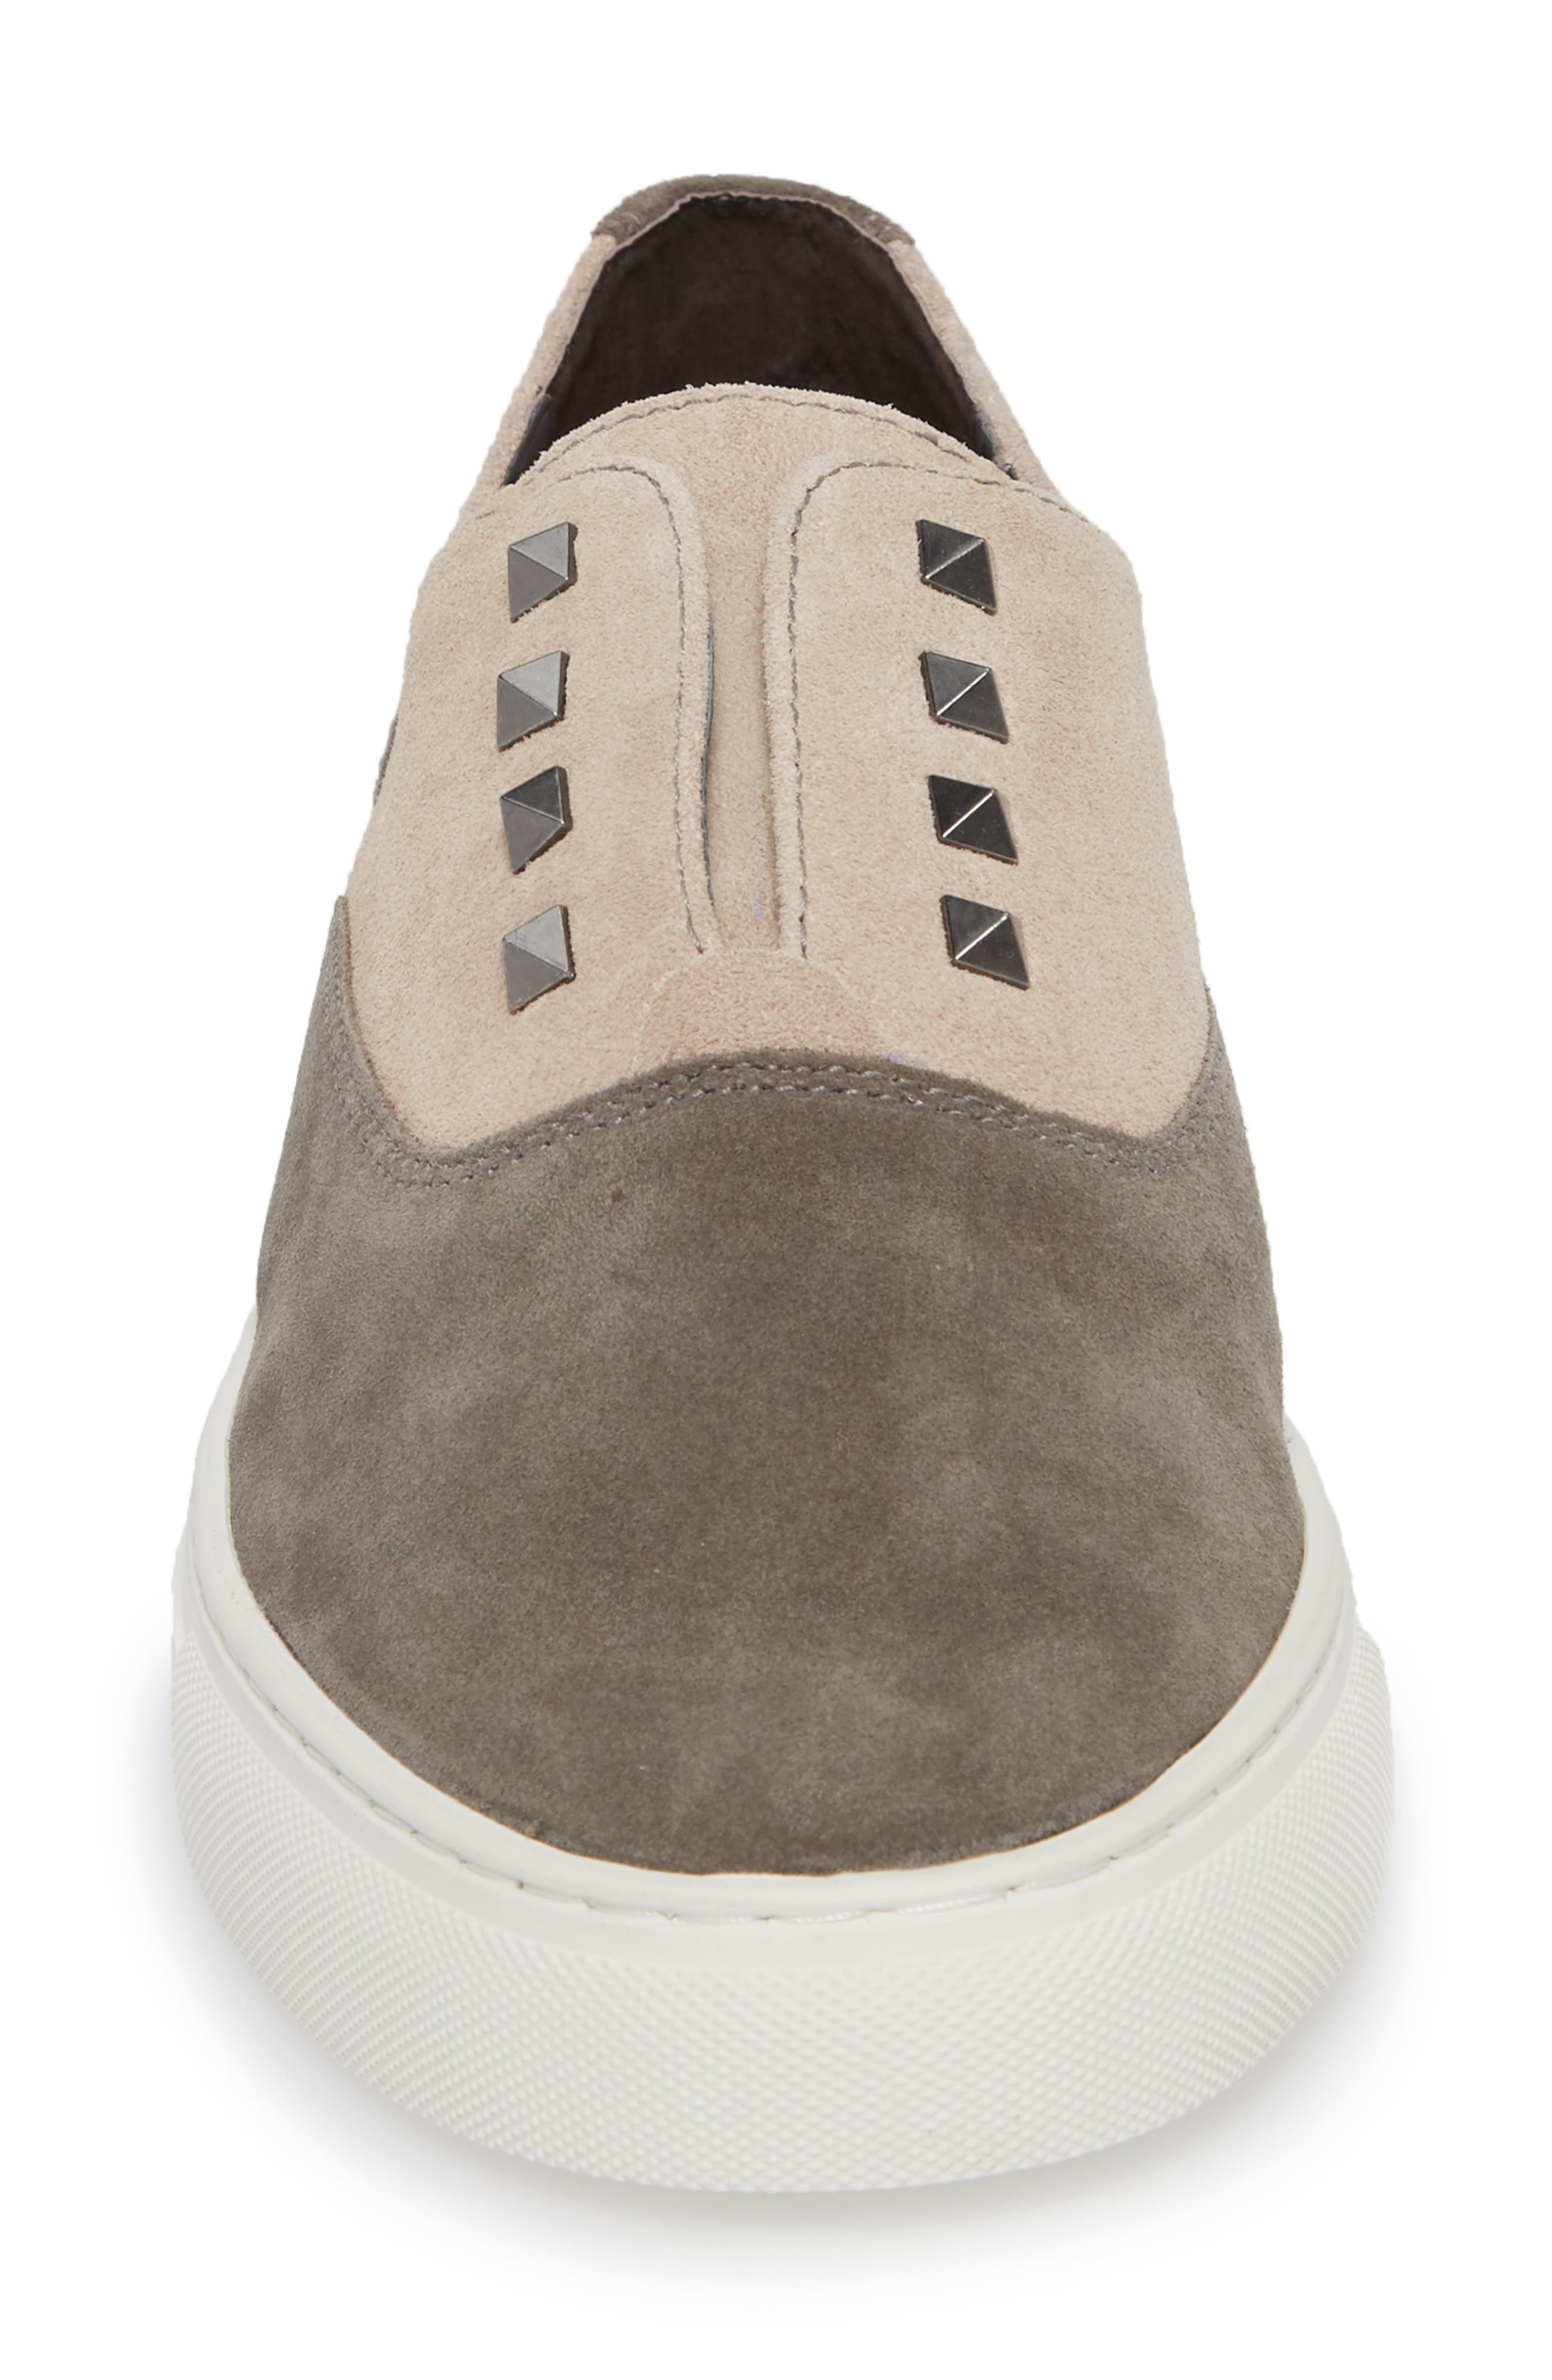 Aryo Studded Laceless Sneaker,                             Alternate thumbnail 4, color,                             Chocolate/ Sand Suede